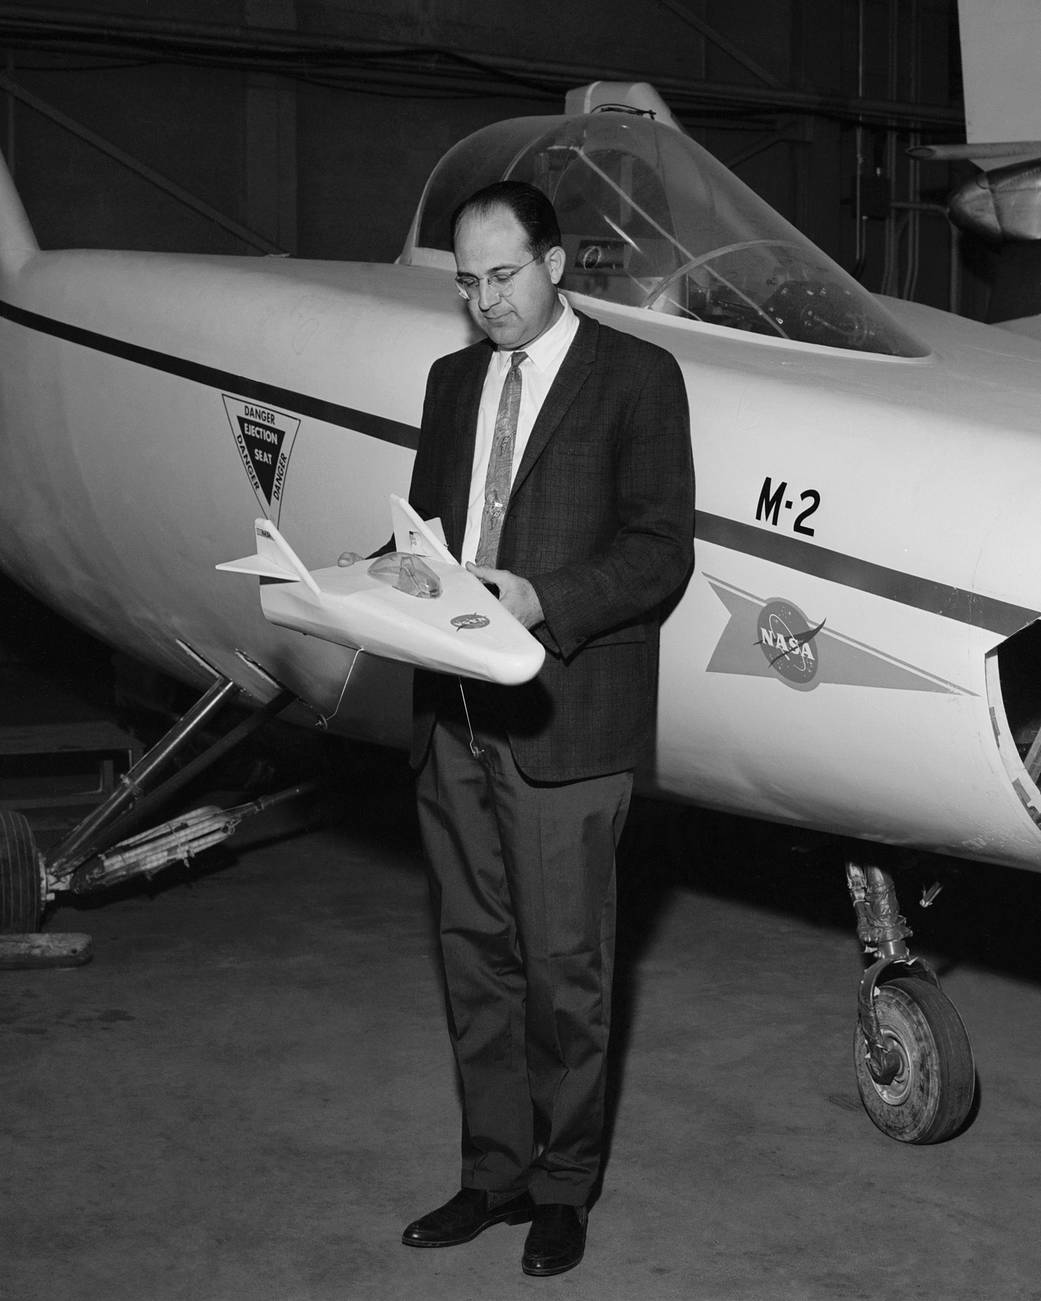 Dale Reed with a Model of the M2-F1 and the Actual M2-F1 Lifting Body